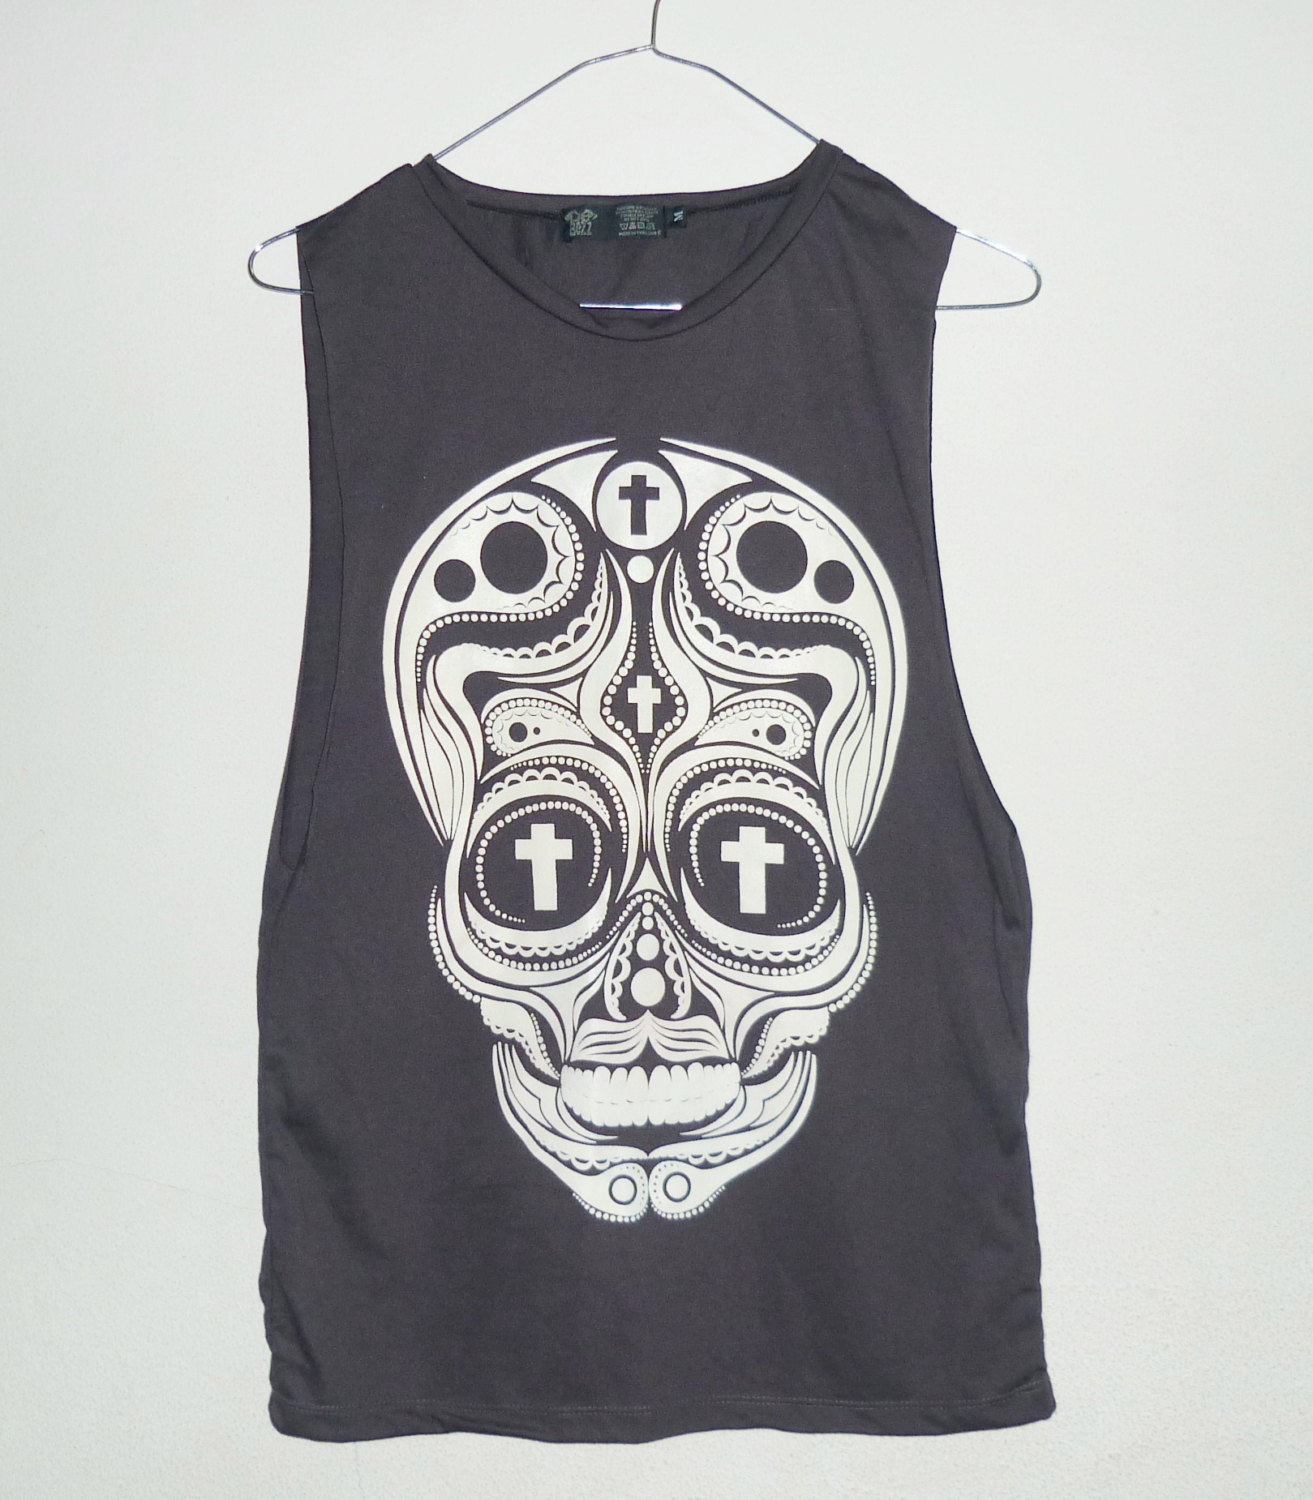 girlsTank top size S small Cross skull shirt cut off shirt Black ...